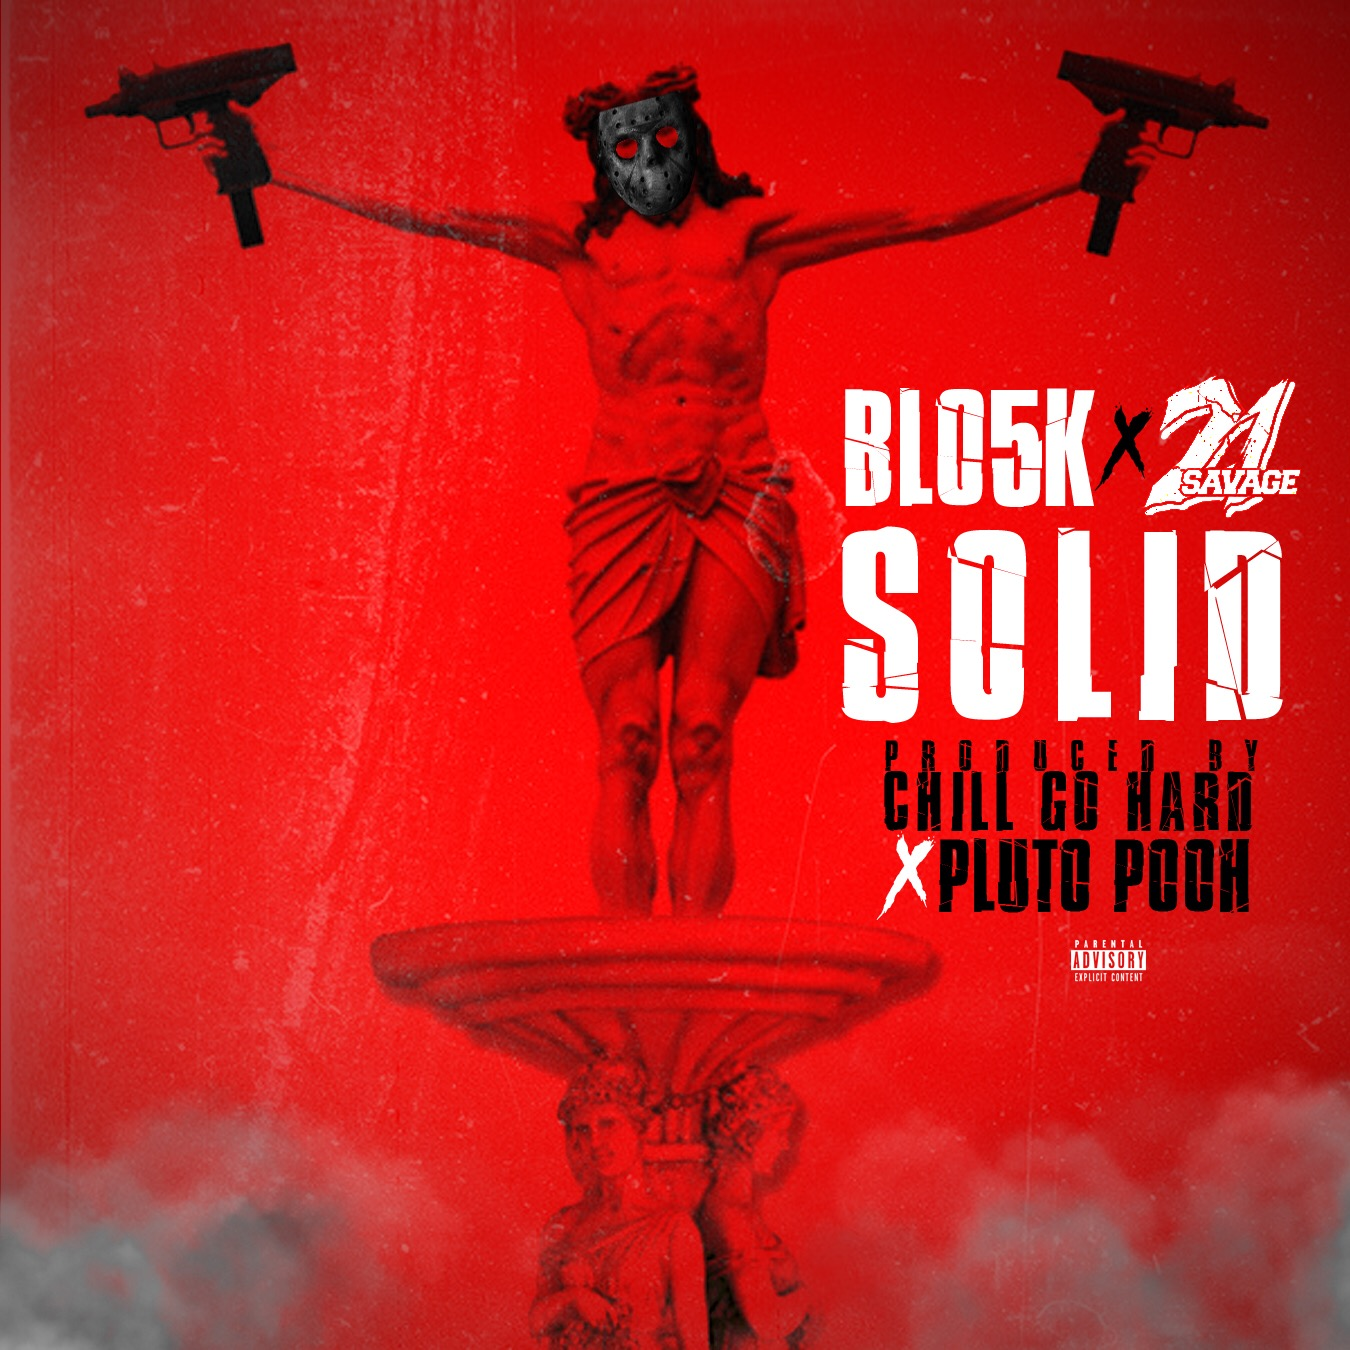 Blo5k Drops 2 New Songs FT 21 Savage Produced By Chill Go Hard & Pluto Pooh!